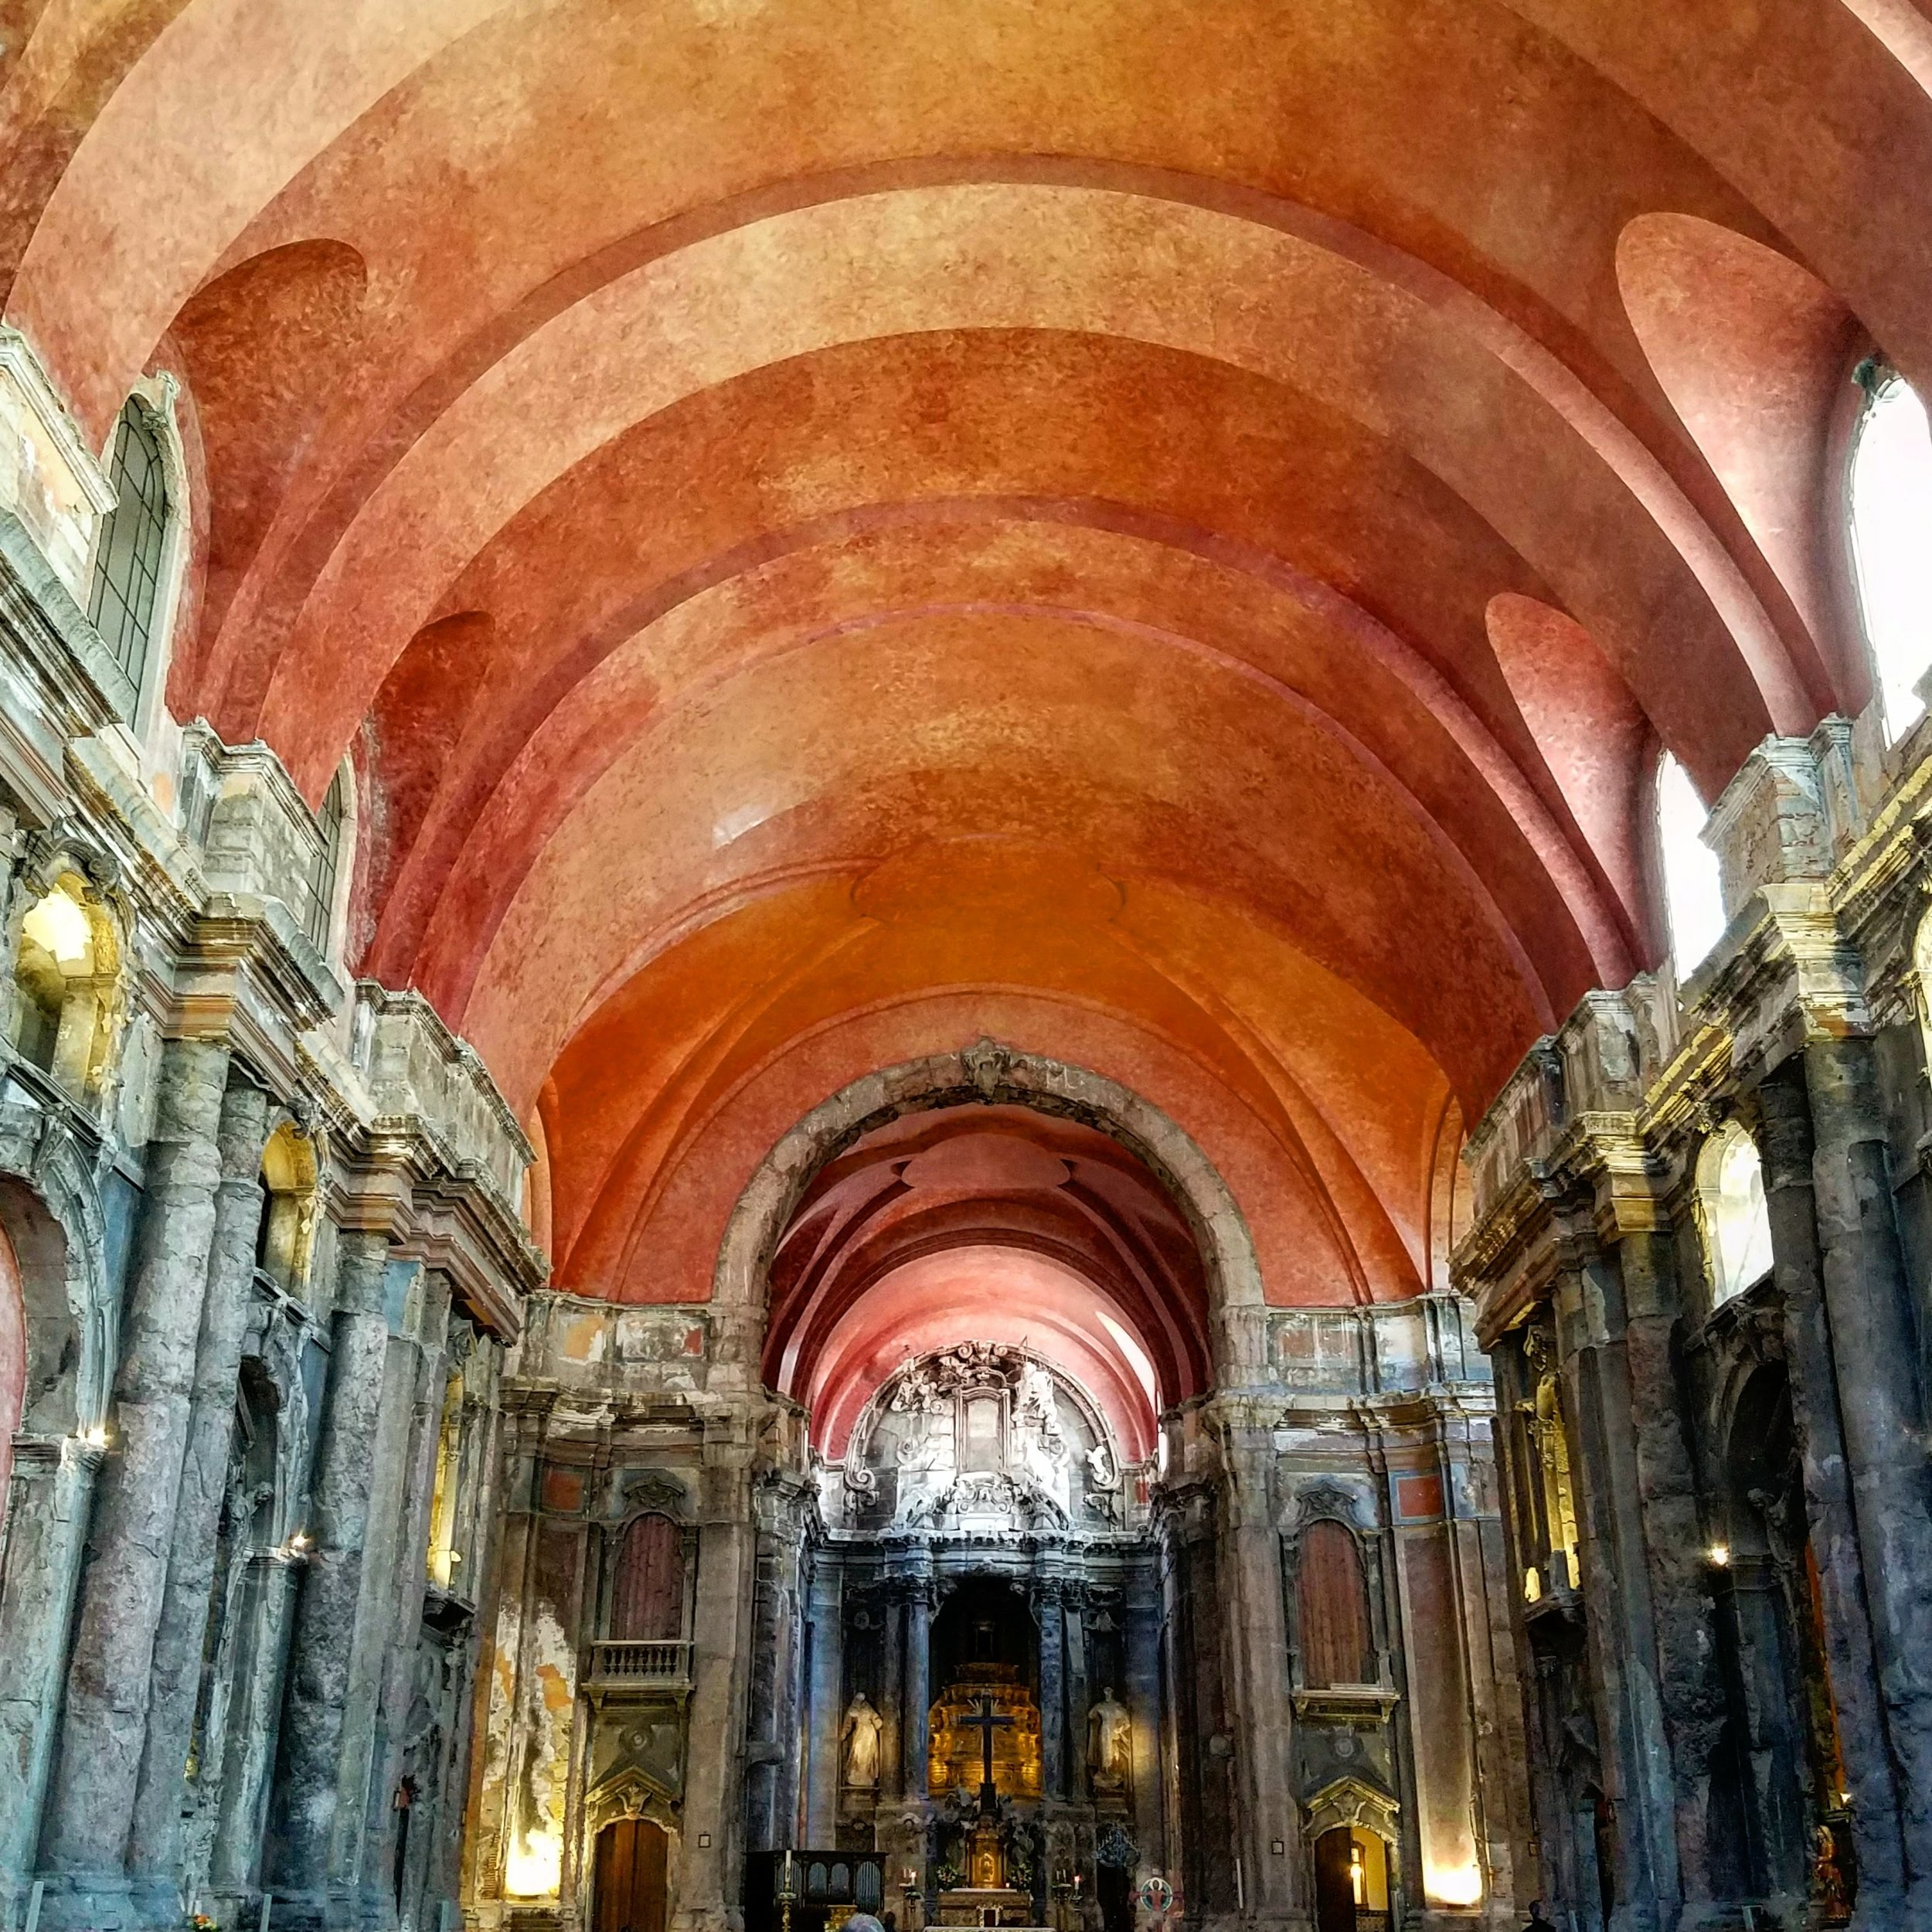 Igreja De São Domingos: The red ceiling commemorates a massacre of Jews in 1506, 9 years after many Jews and Muslims were forced to convert to Chritianity under King Manuel I.